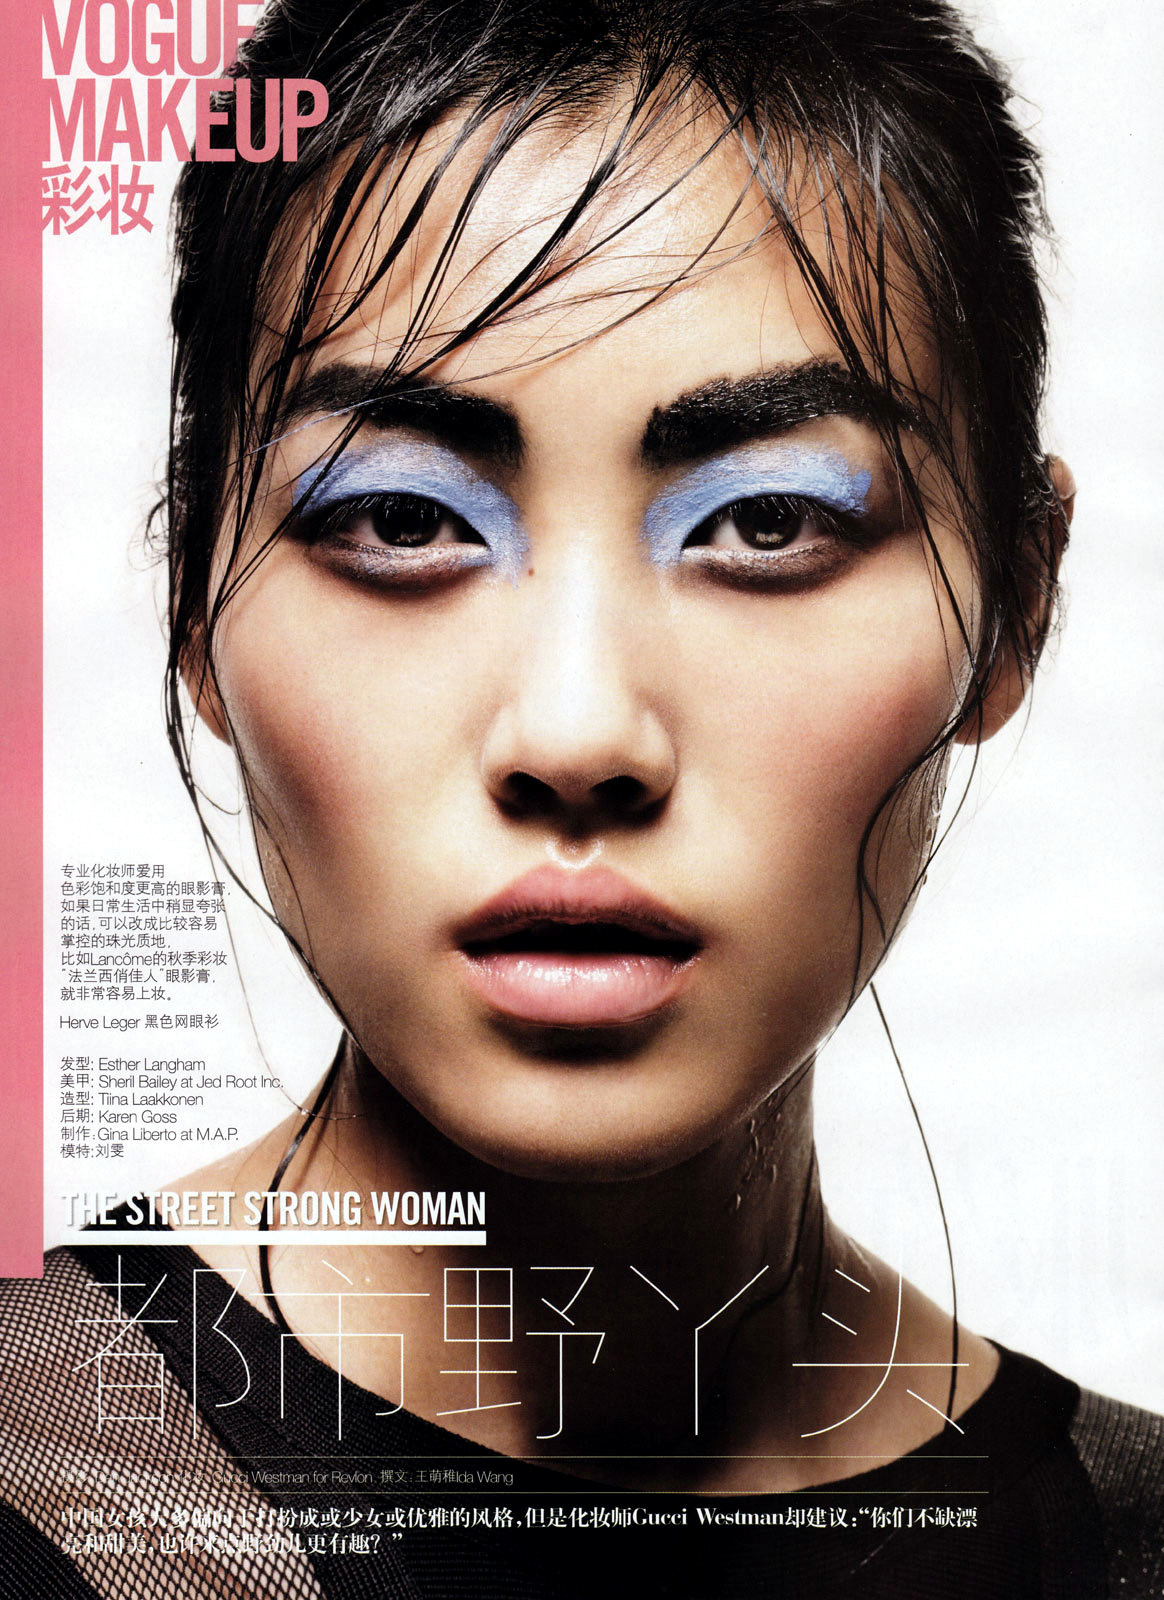 Asian Eyelid Surgery Center - Frequently Asked Questions (FAQs)